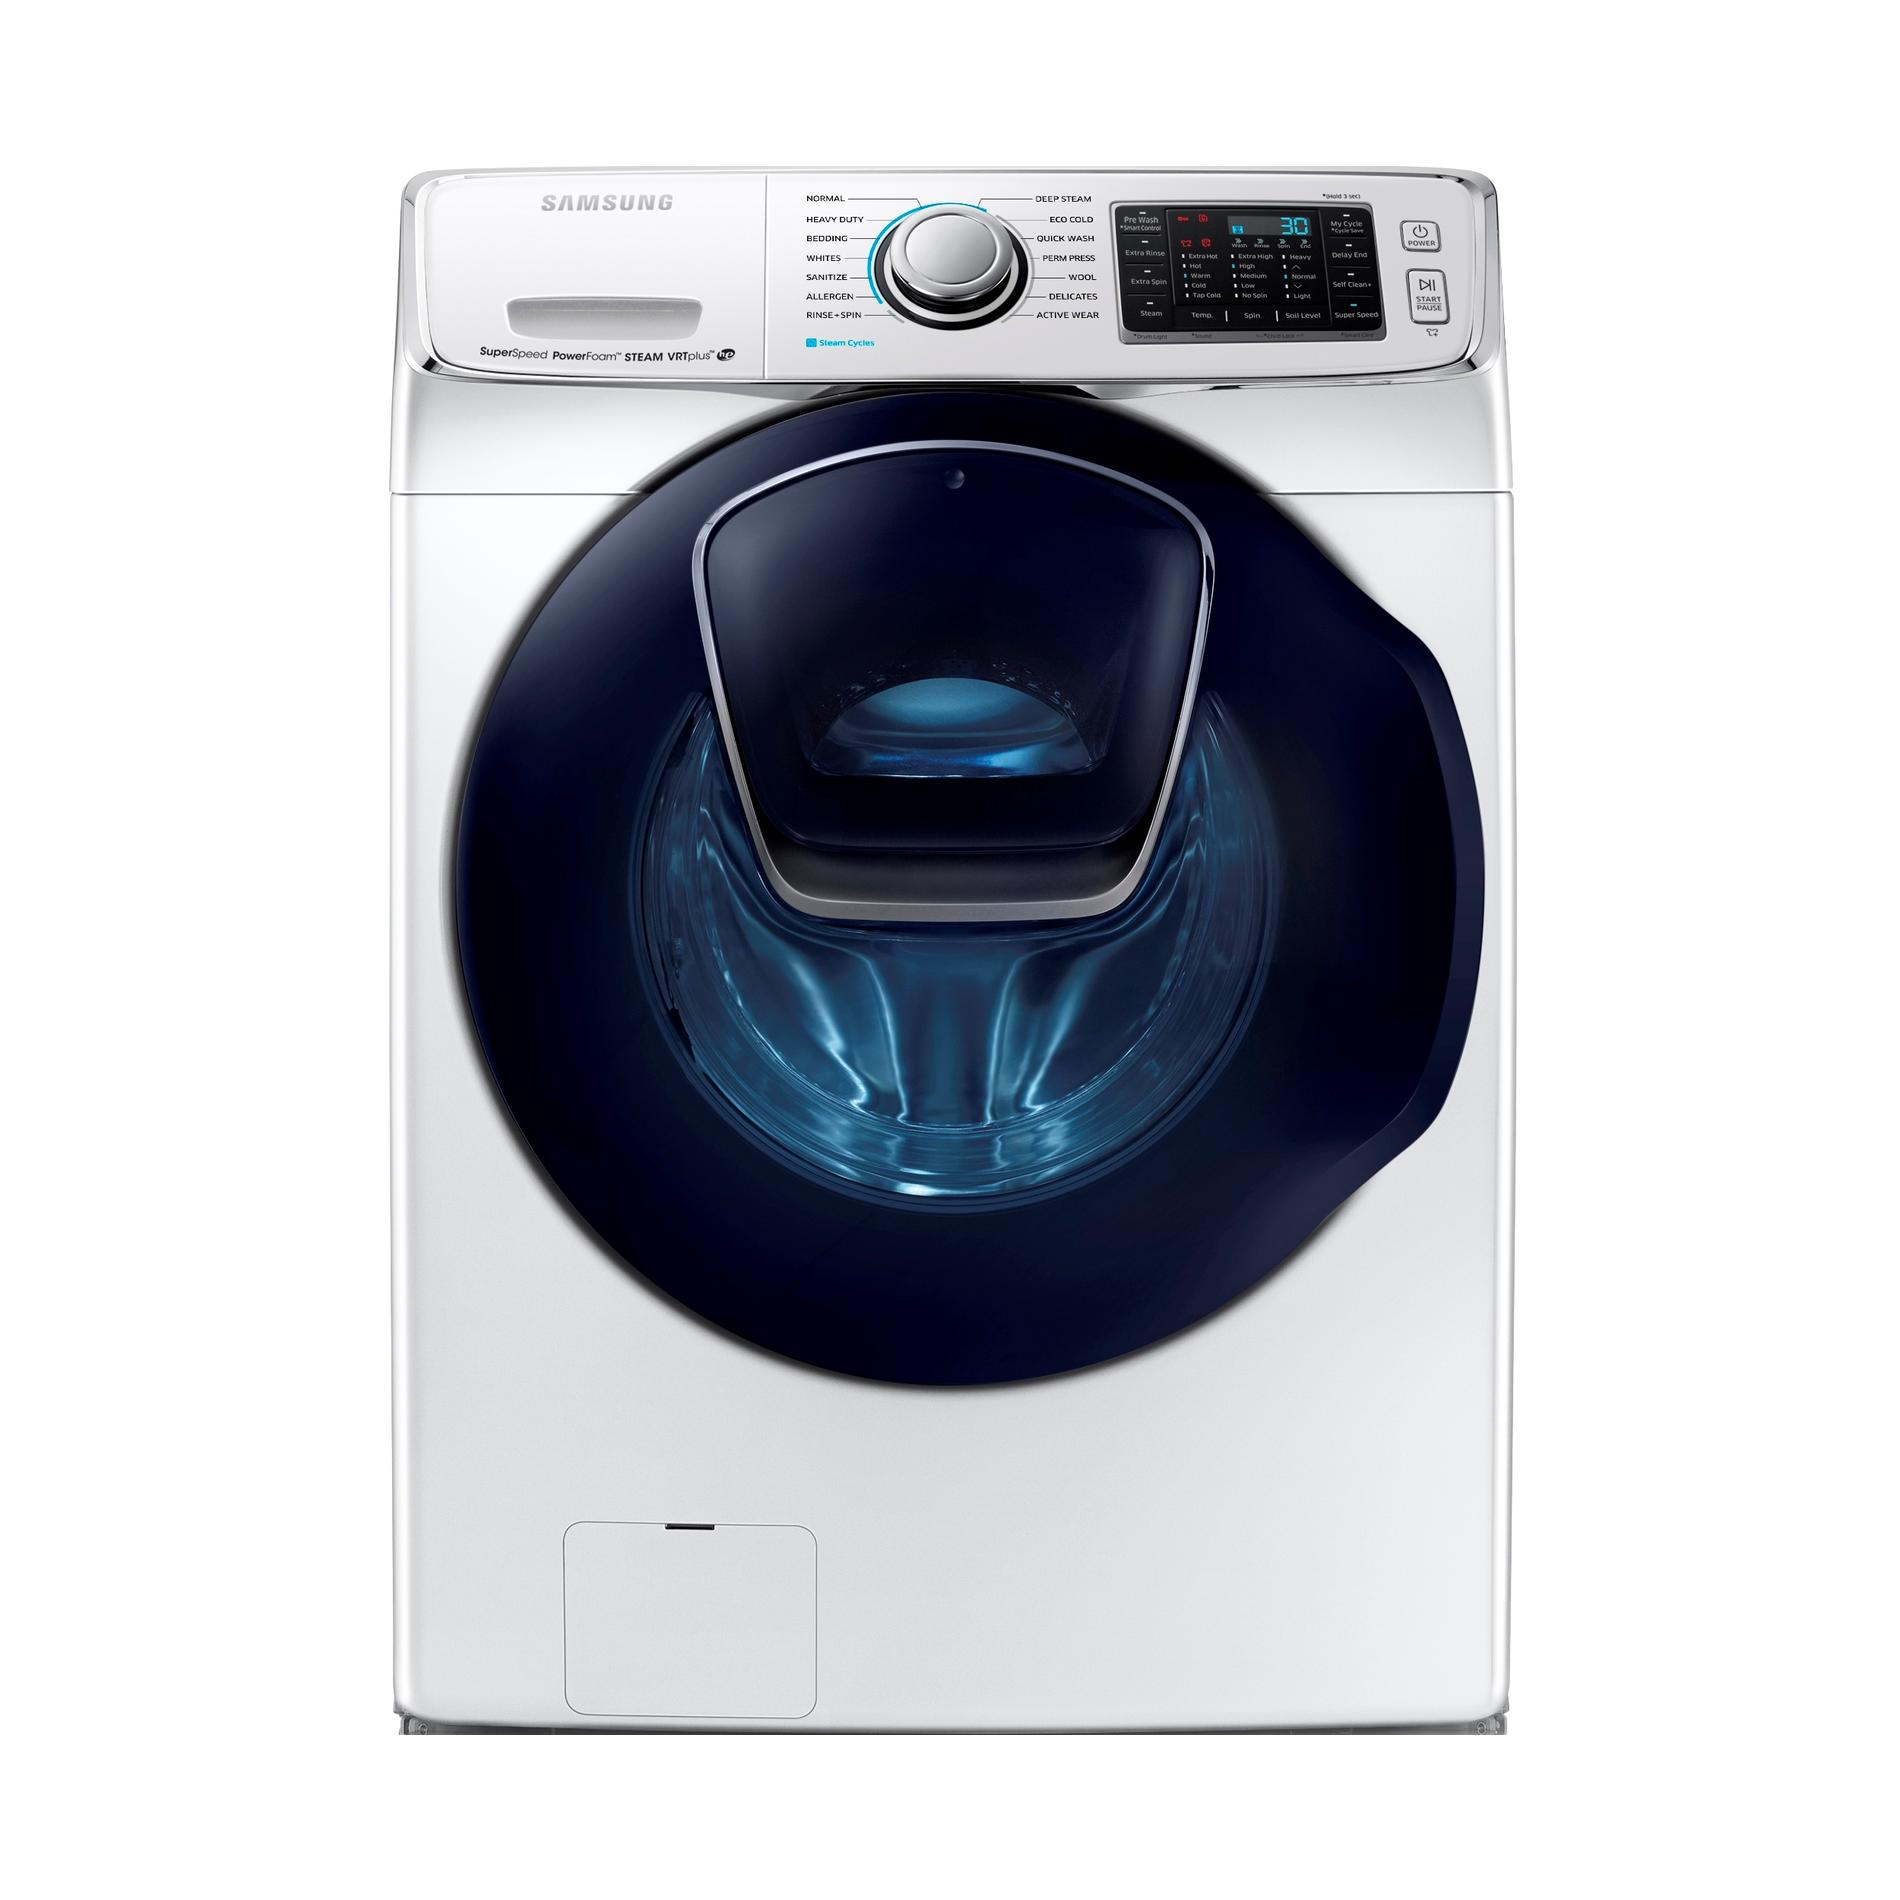 Samsung WF50K7500AW 5.0 cu. ft. AddWash™ Front Load Washer White